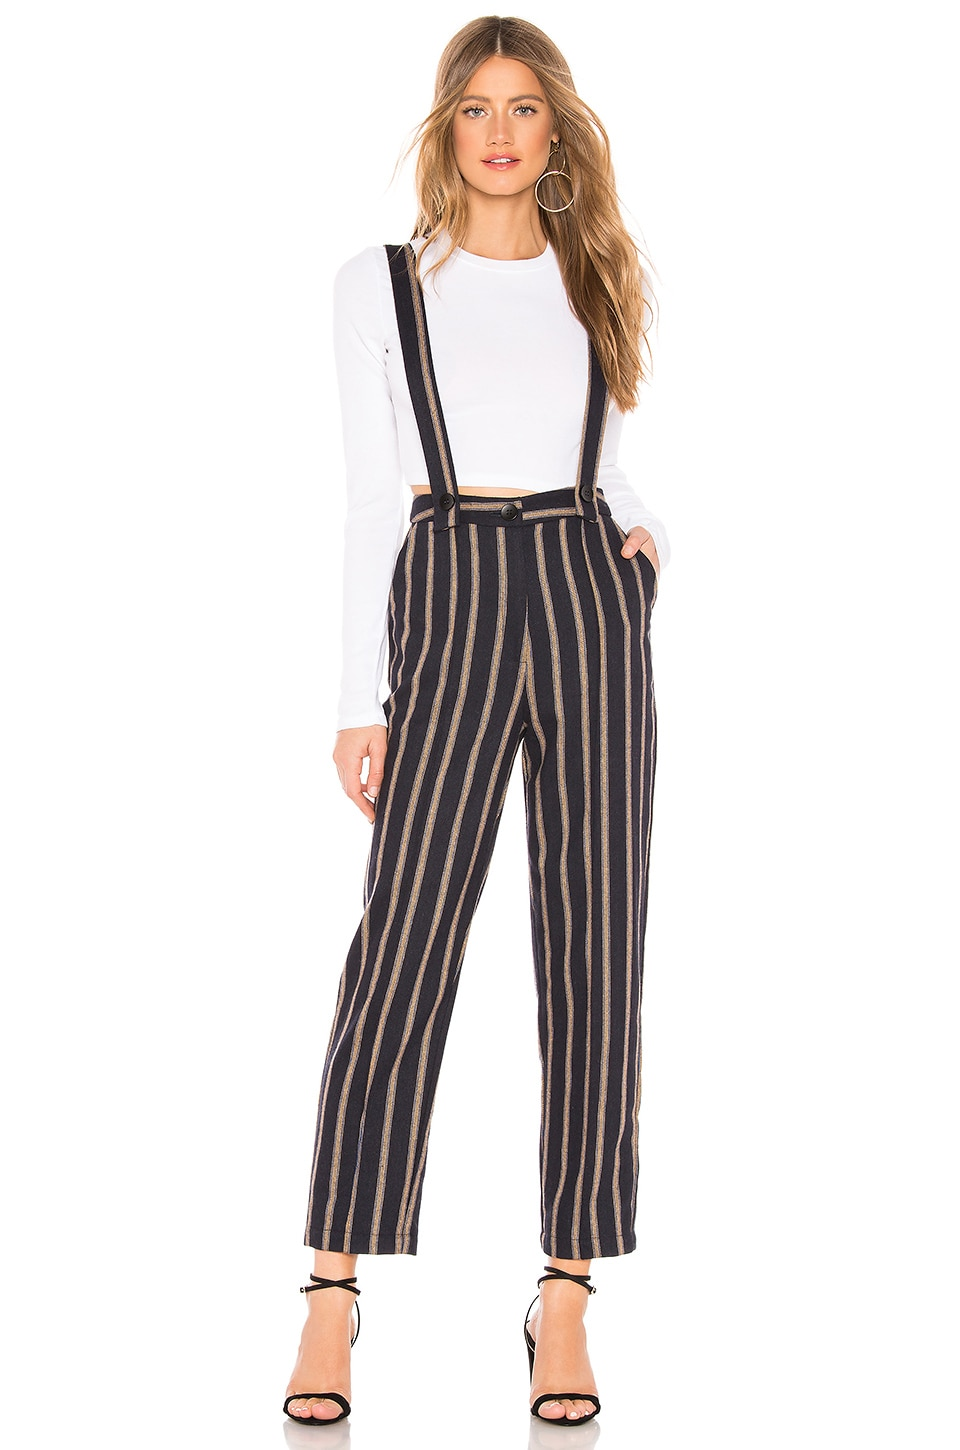 J.O.A. Self Suspender Pant in Navy & Tan Stripe